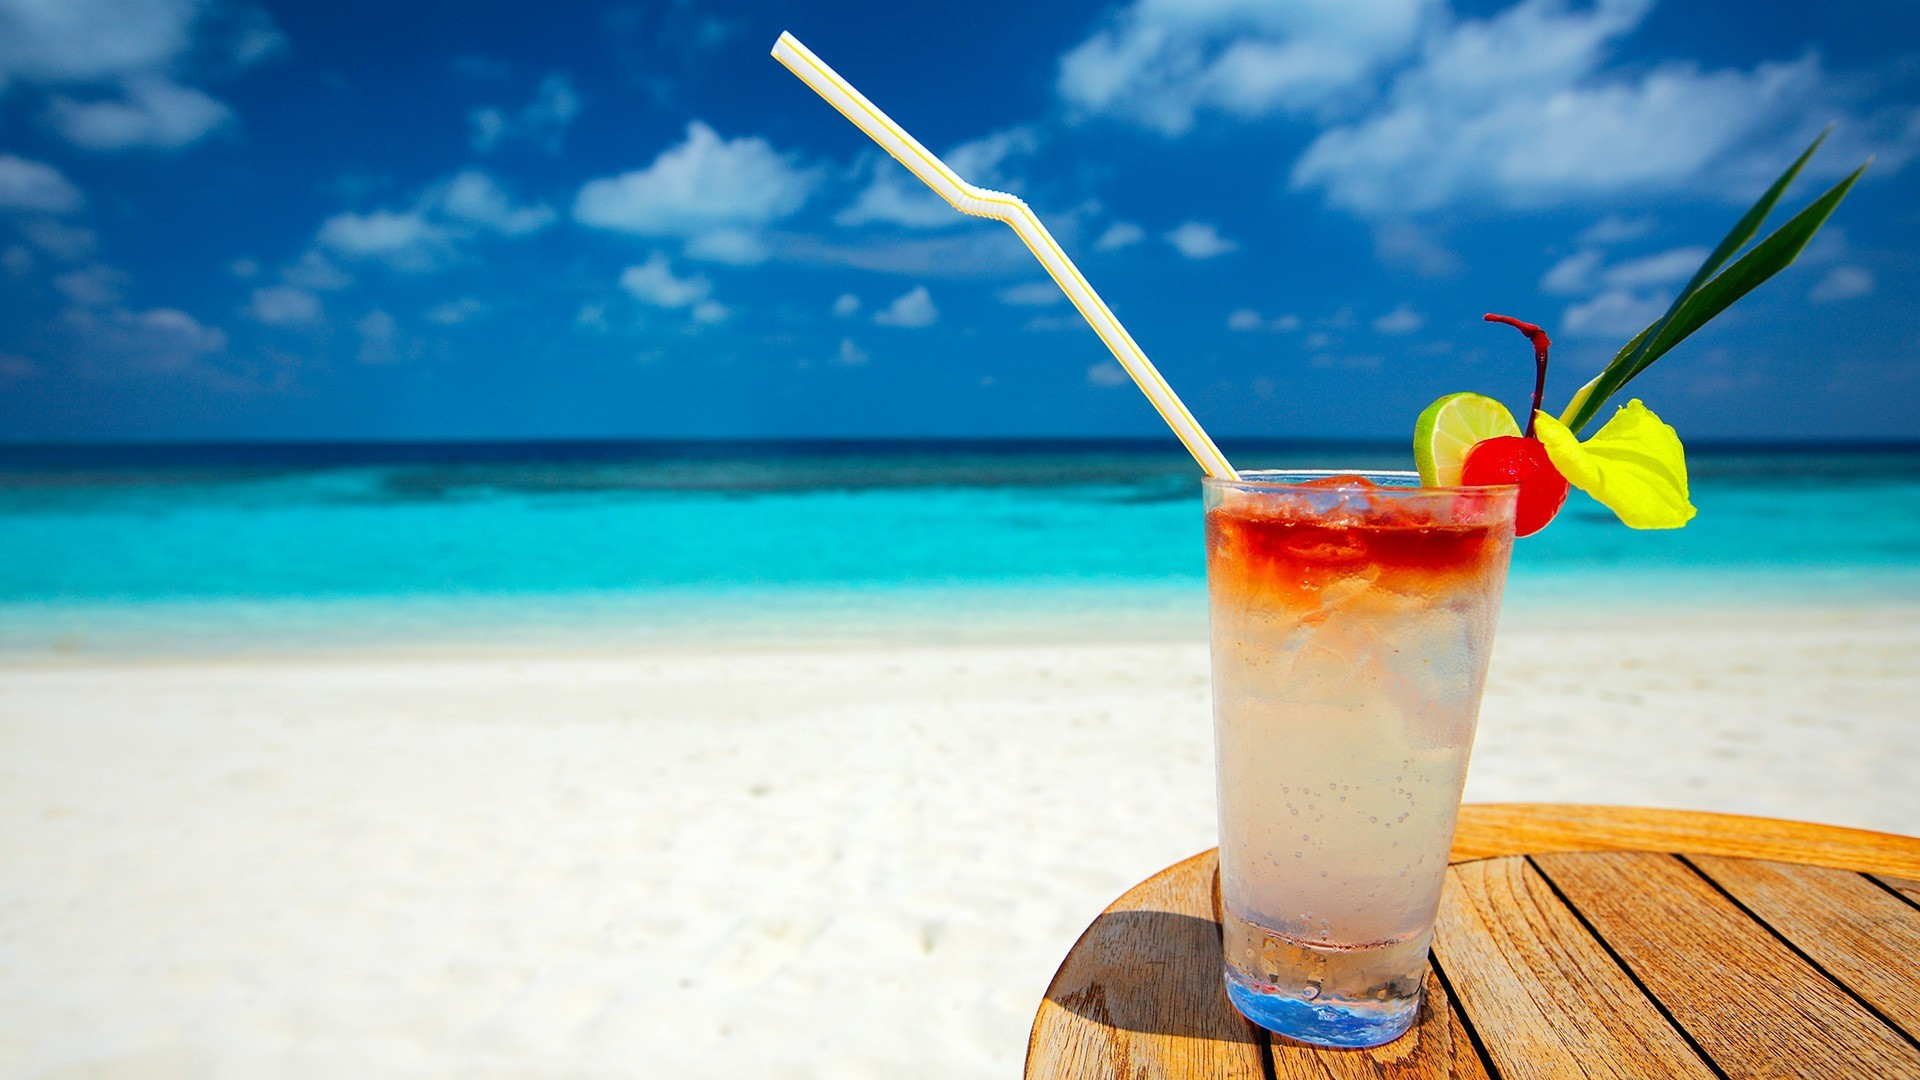 refreshing-cocktail-on-the-beach_067873